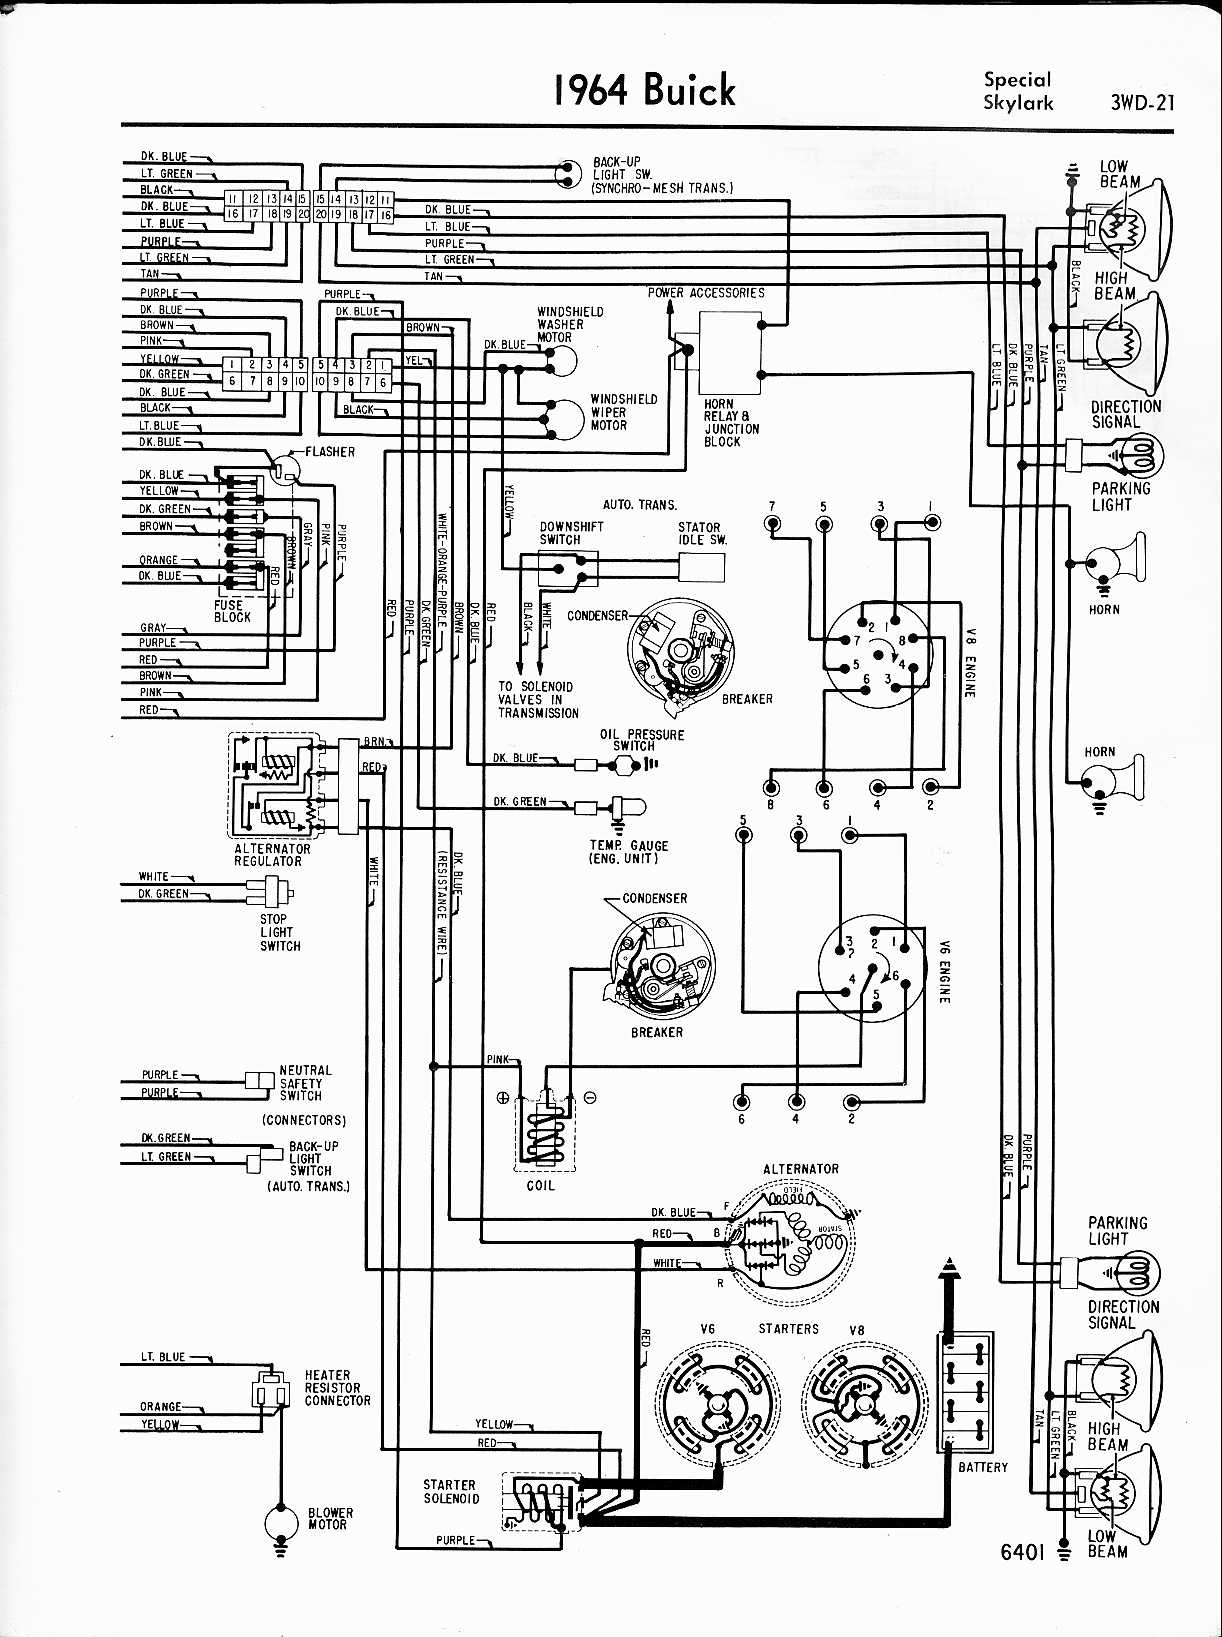 buick wiring diagrams 1957 1965 wiring harness for 1964 buick riviera